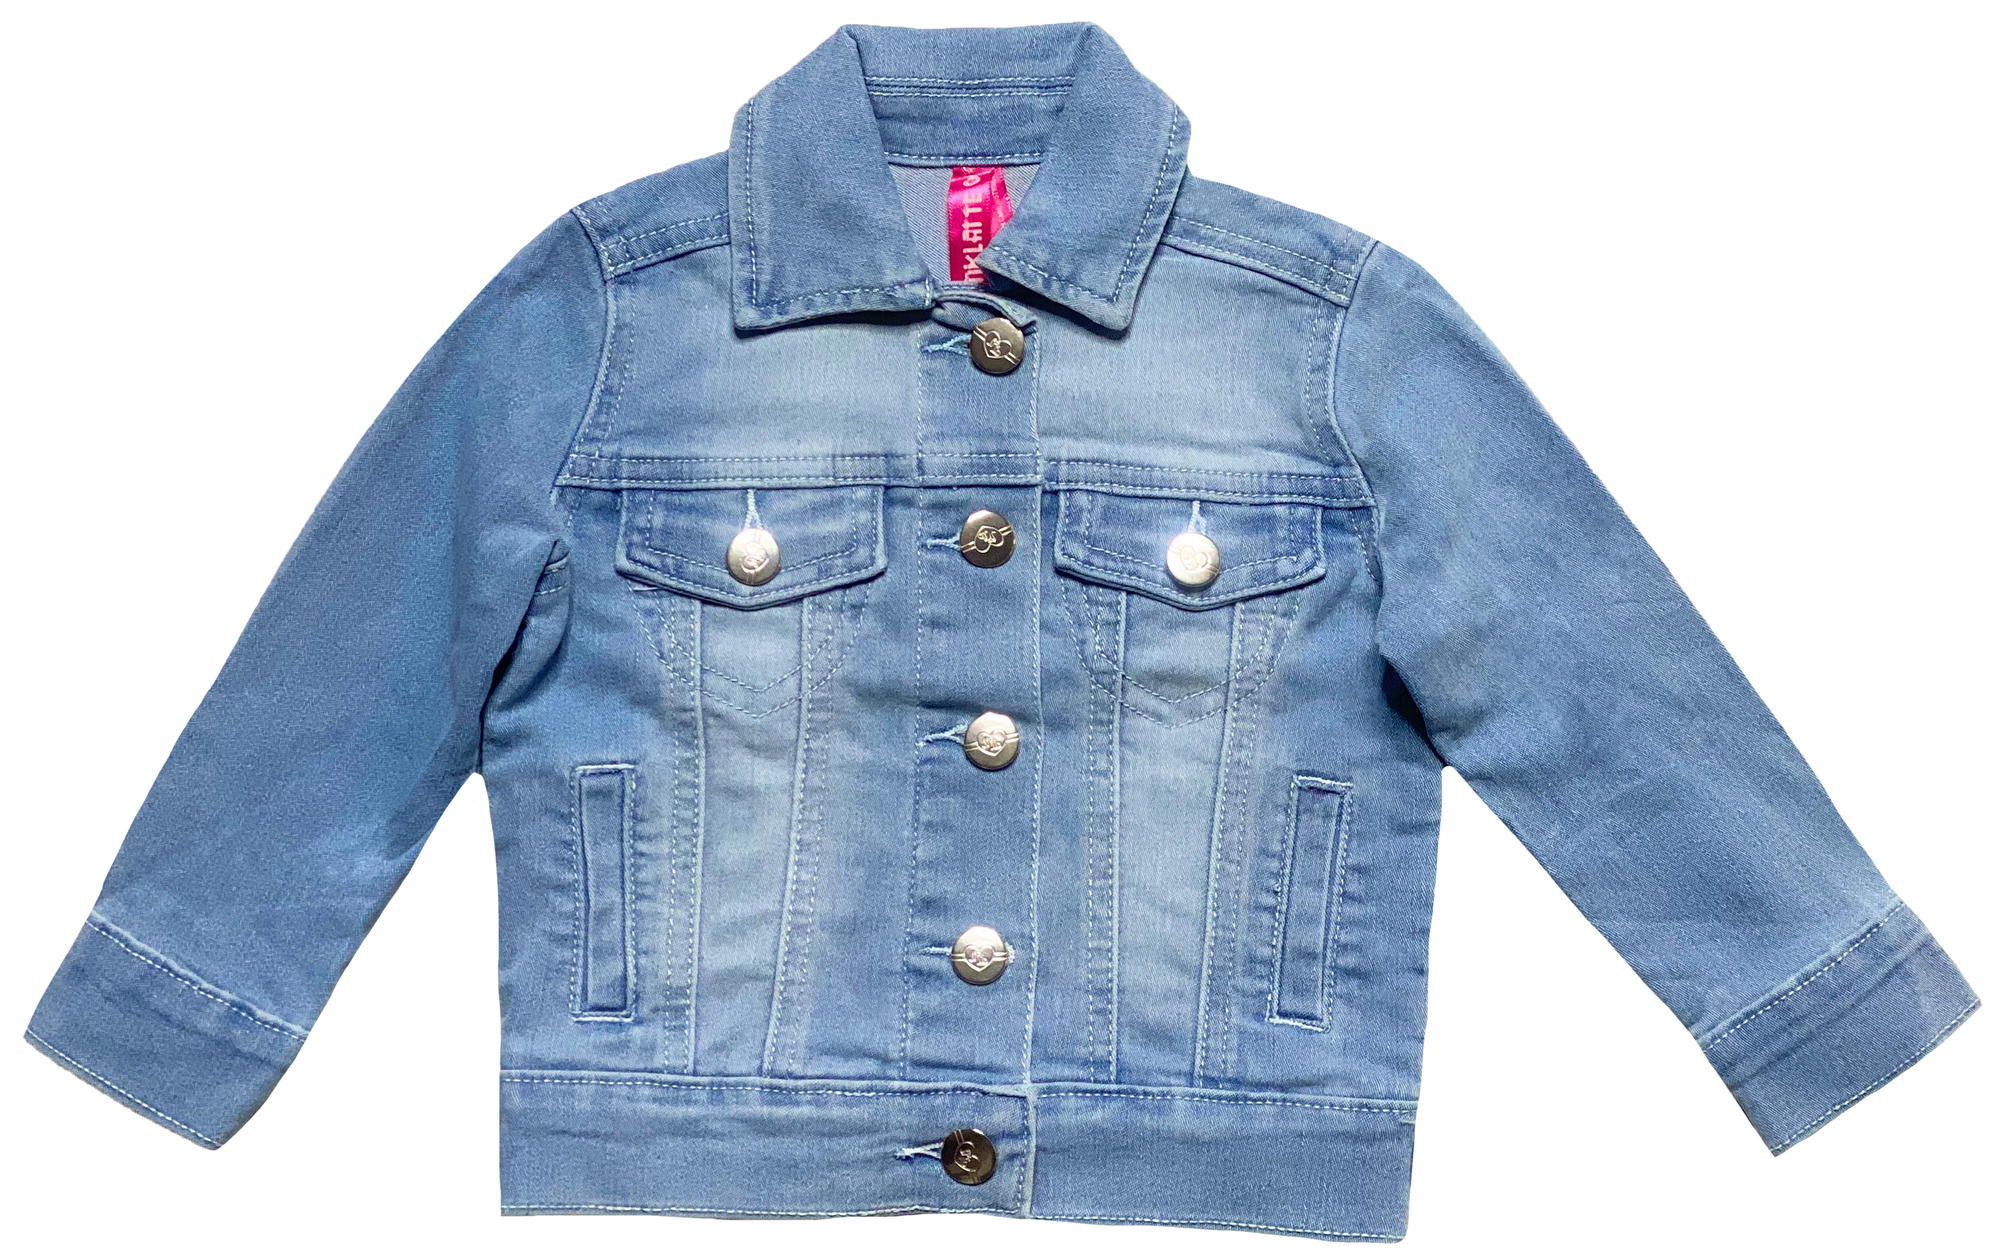 Toddler Girl's Denim Jacket